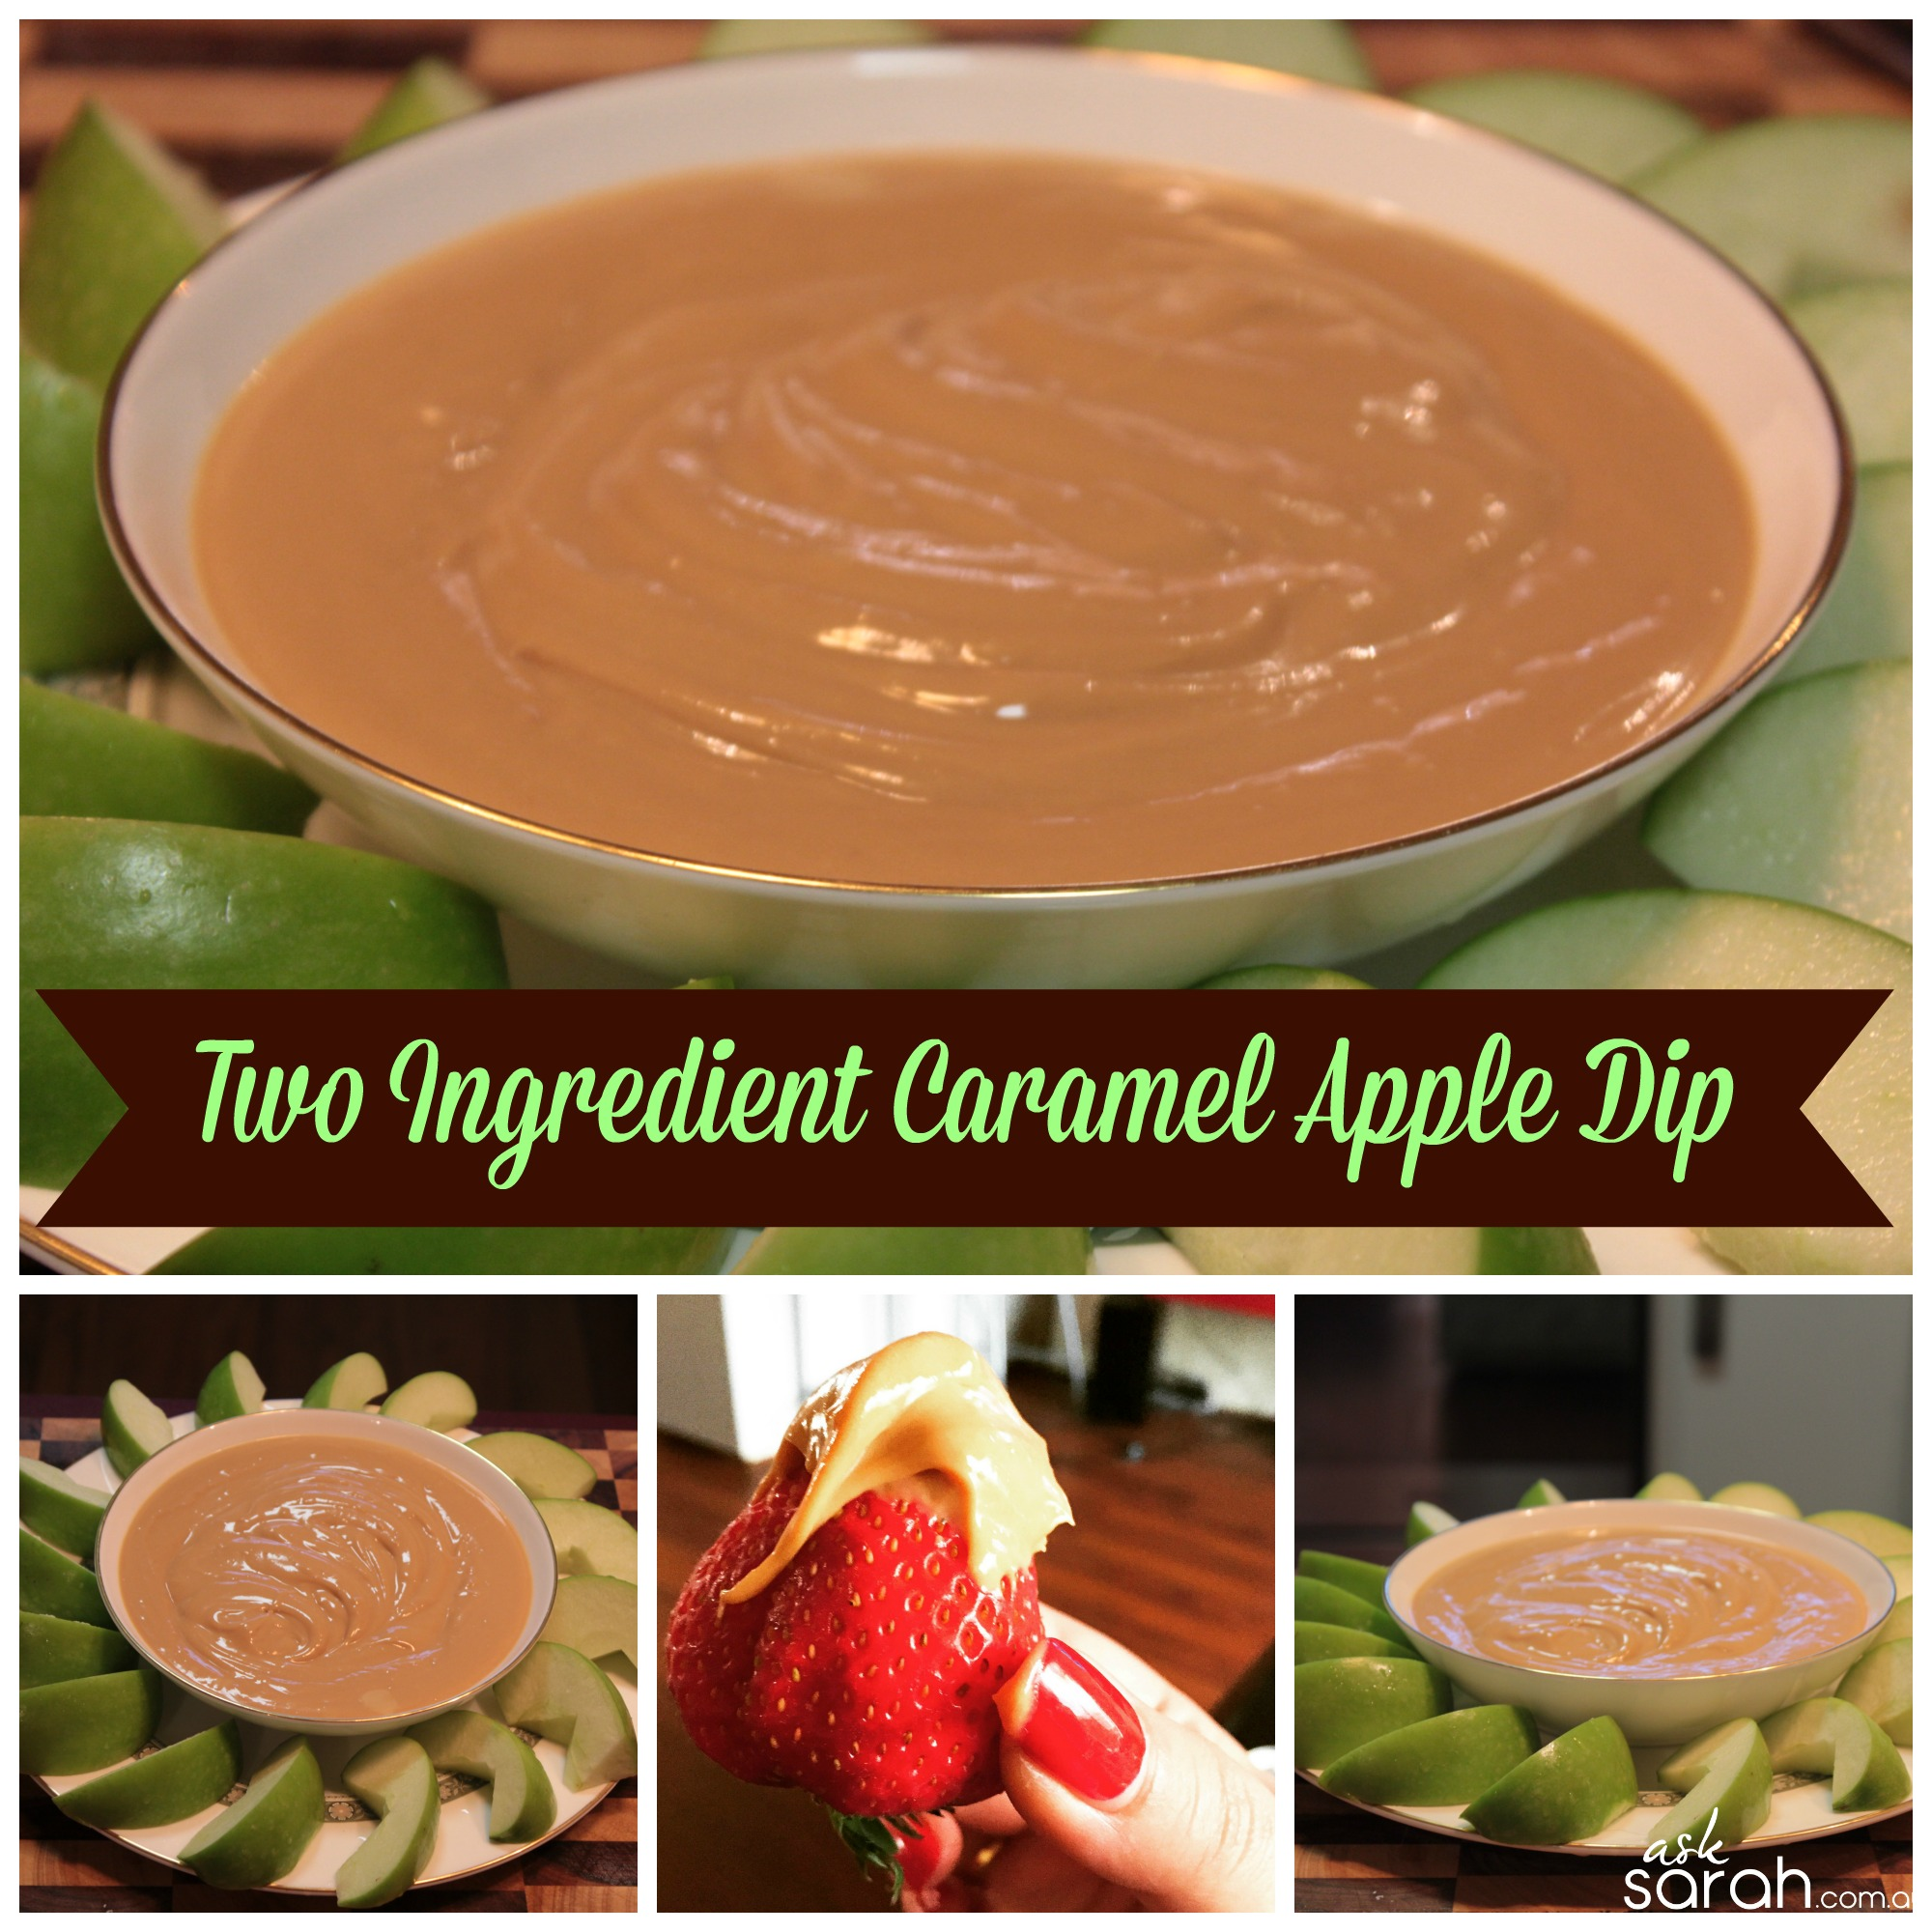 Recipe: Two Ingredient Caramel Apple Dip